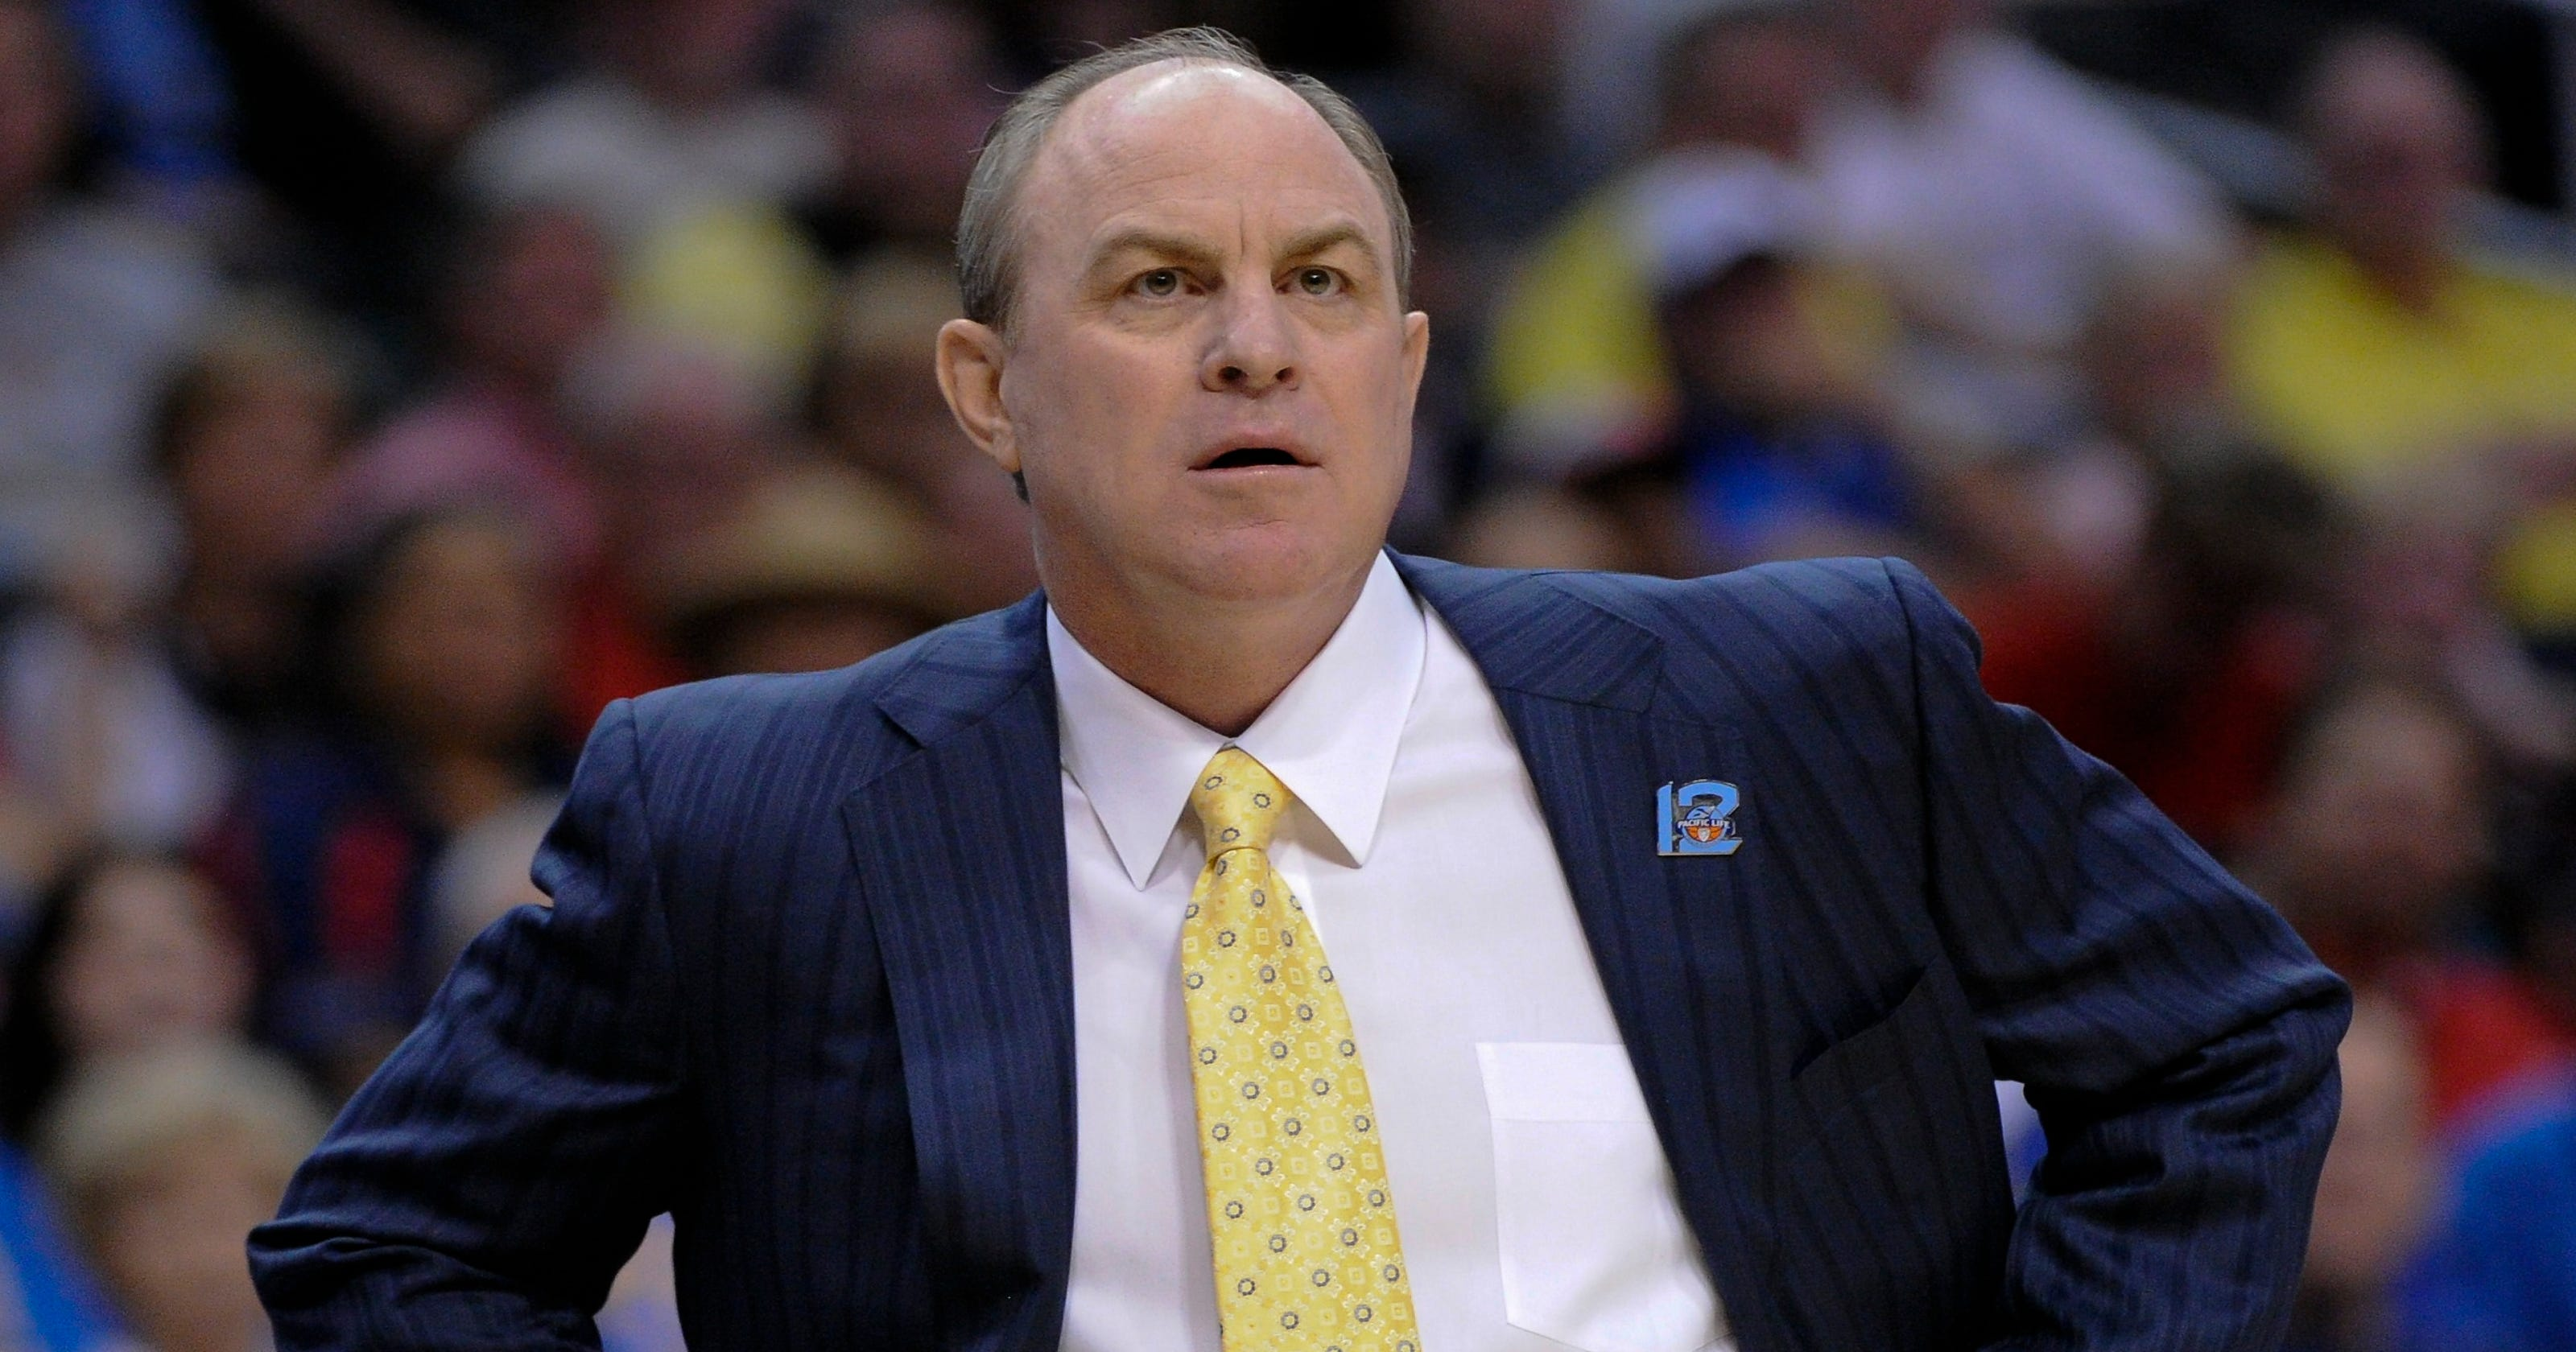 Mississippi State set to hire Ben Howland as head coach